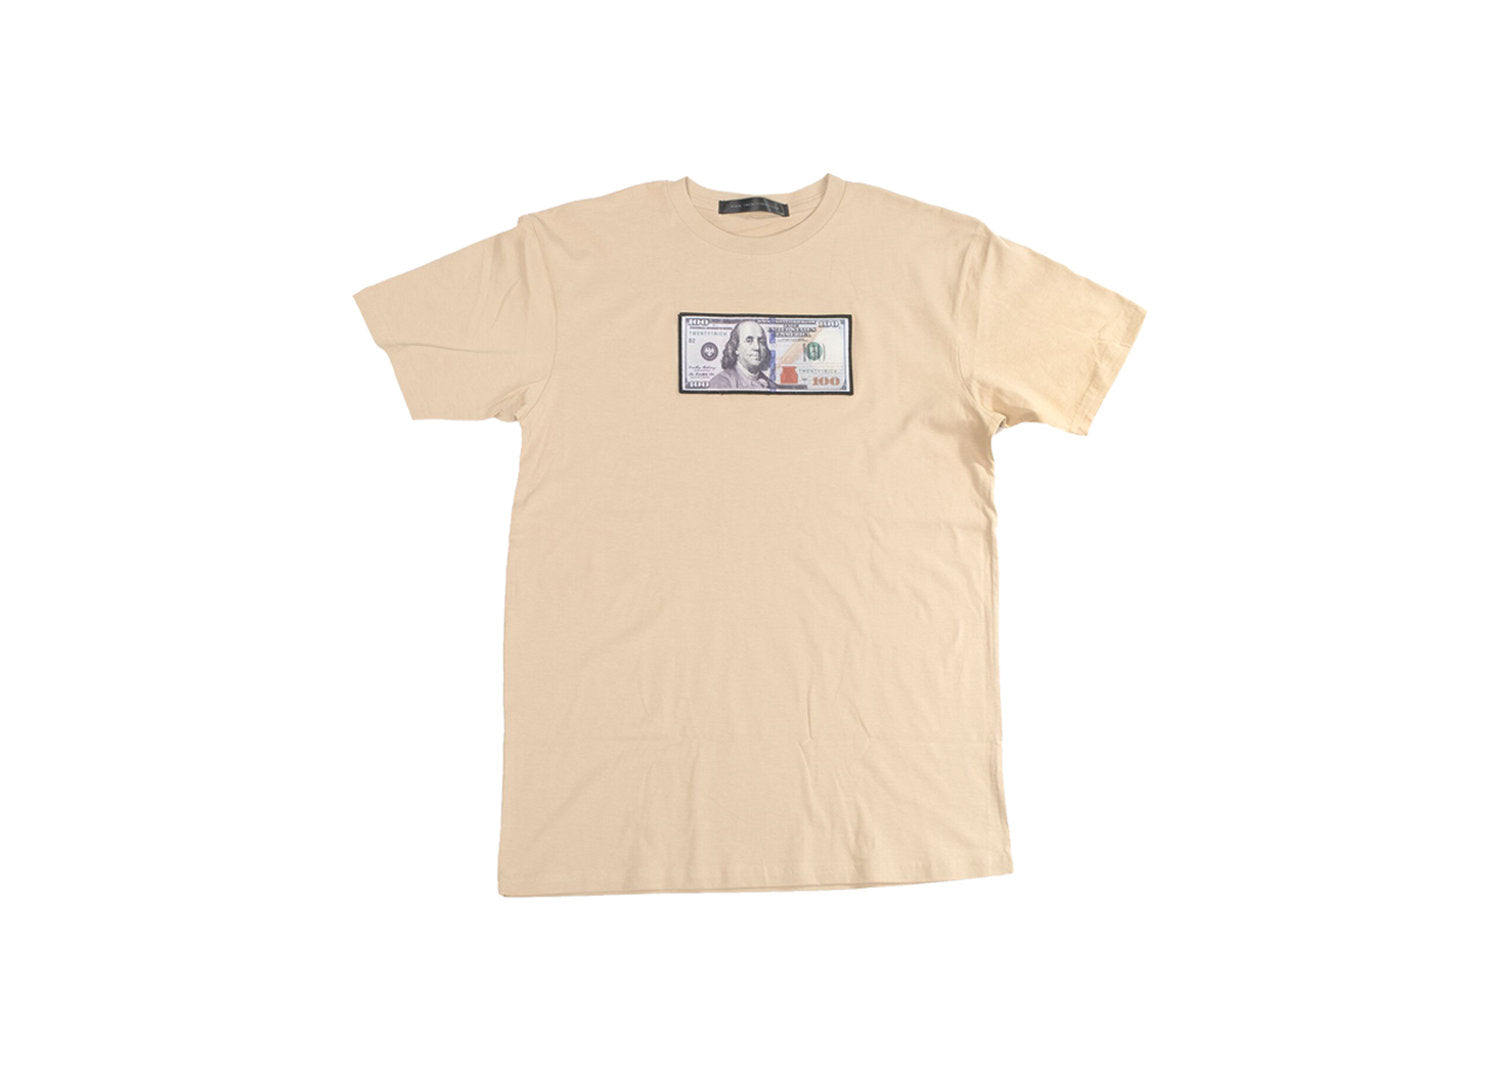 """Blue Hundreds"" Tee by Twenty1Rich with $100 logo"